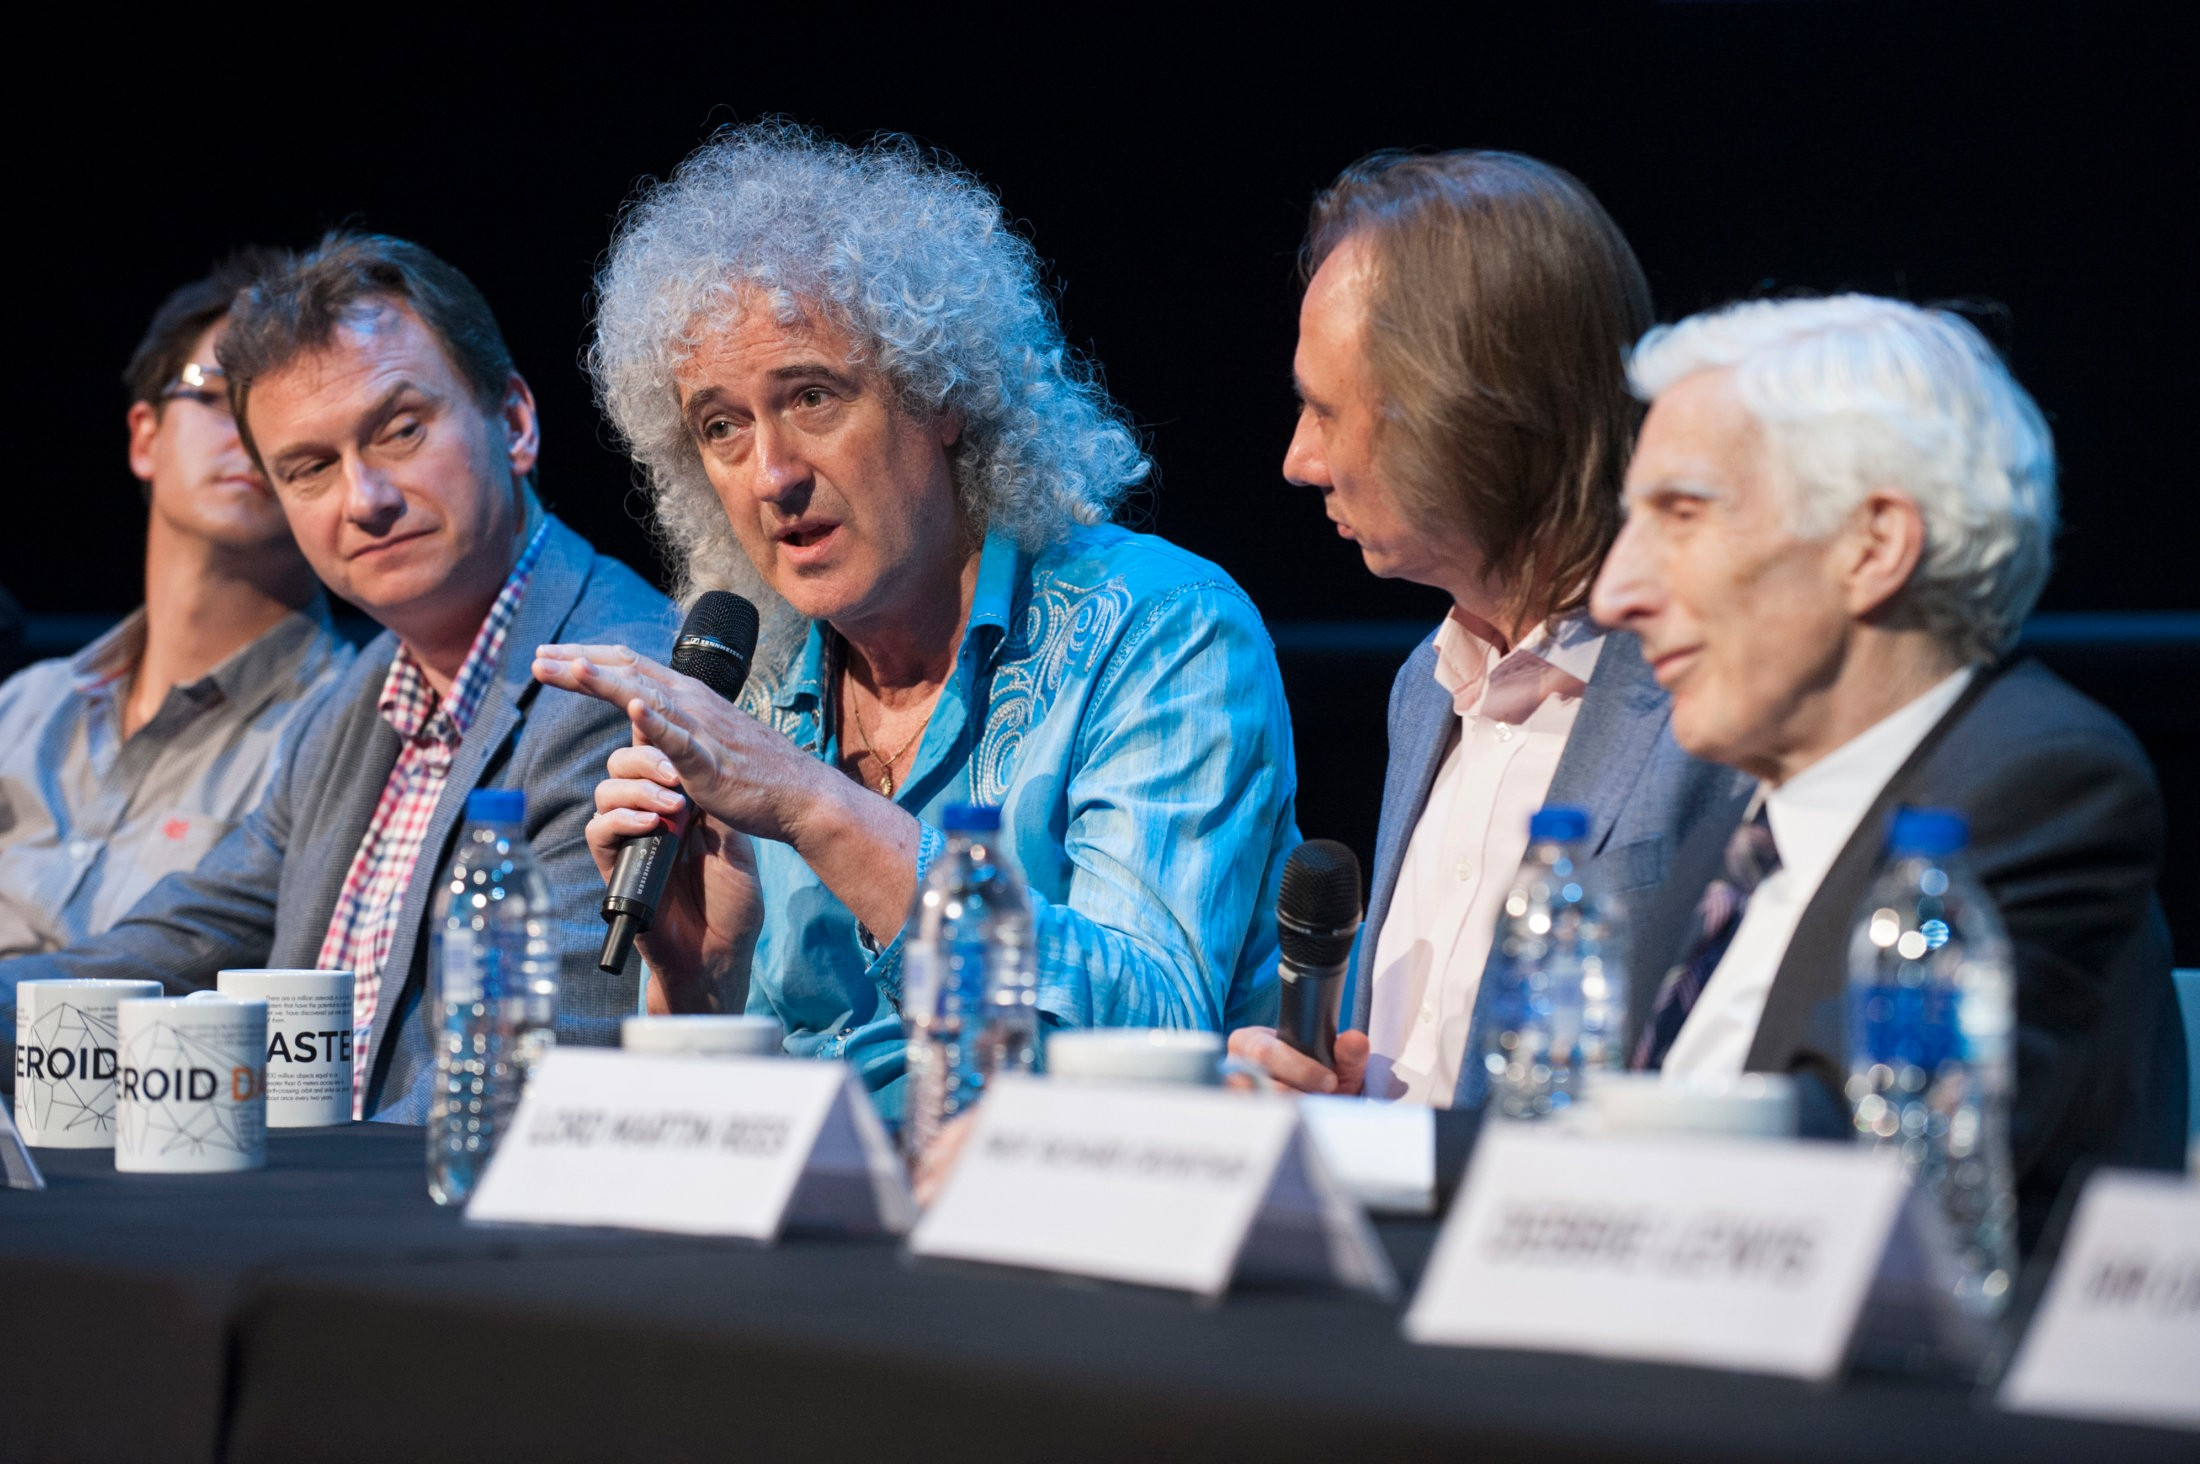 The esteemed Asteroid Day 2015 panel: left to right is Prof Alan Fitzsimmons, Brian May, Stuart Clark and Astronomer Royal Martin Rees. Credit: Asteroid Day